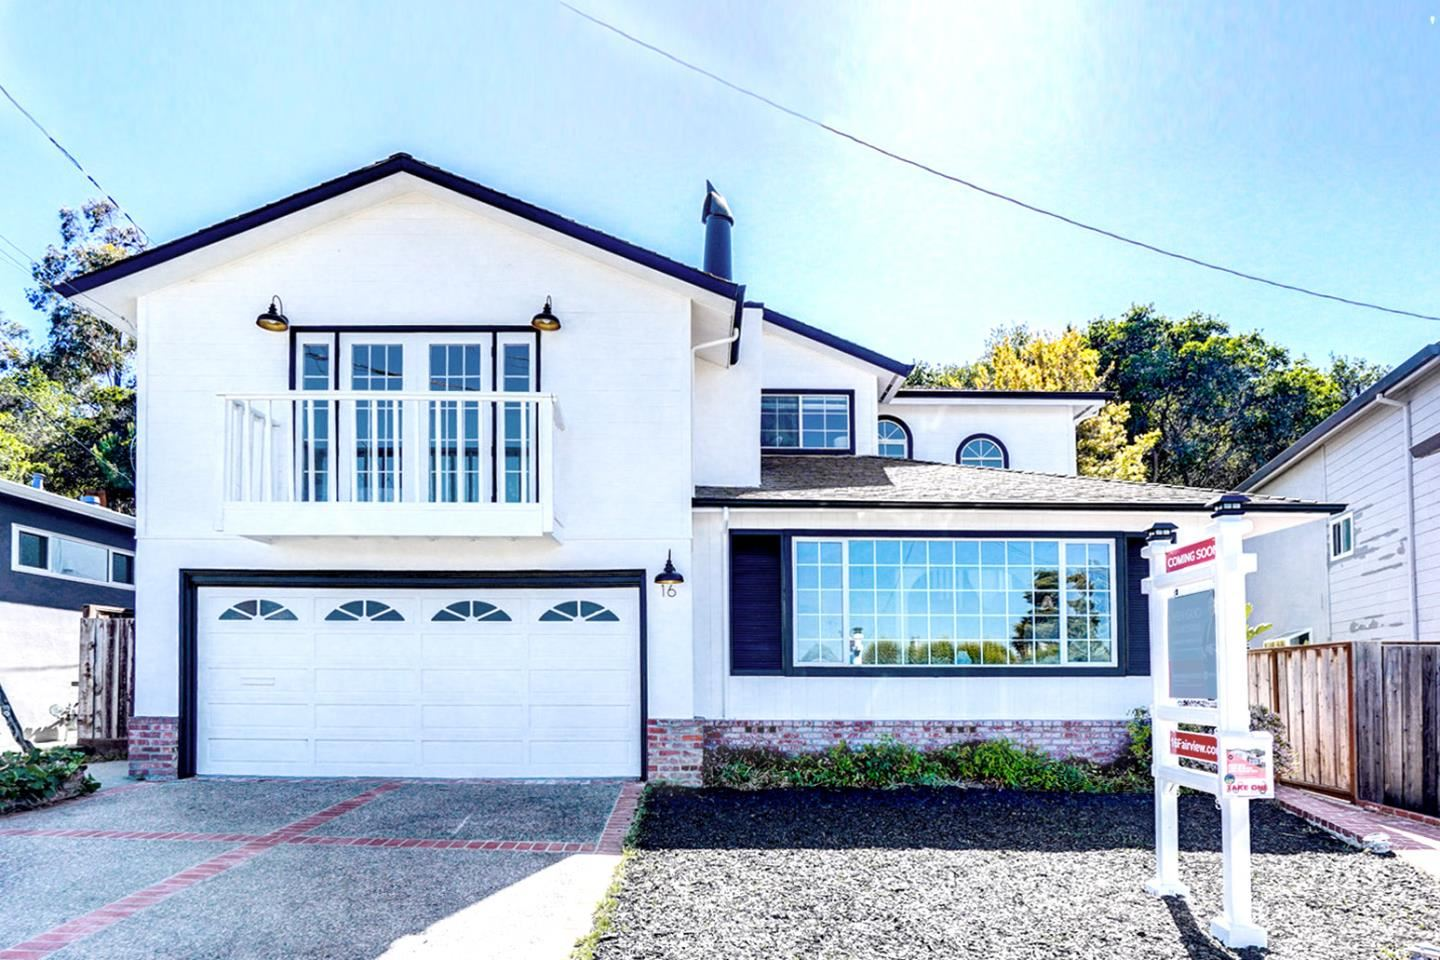 Photo for 16 Fairview Place, MILLBRAE, CA 94030 (MLS # ML81845180)